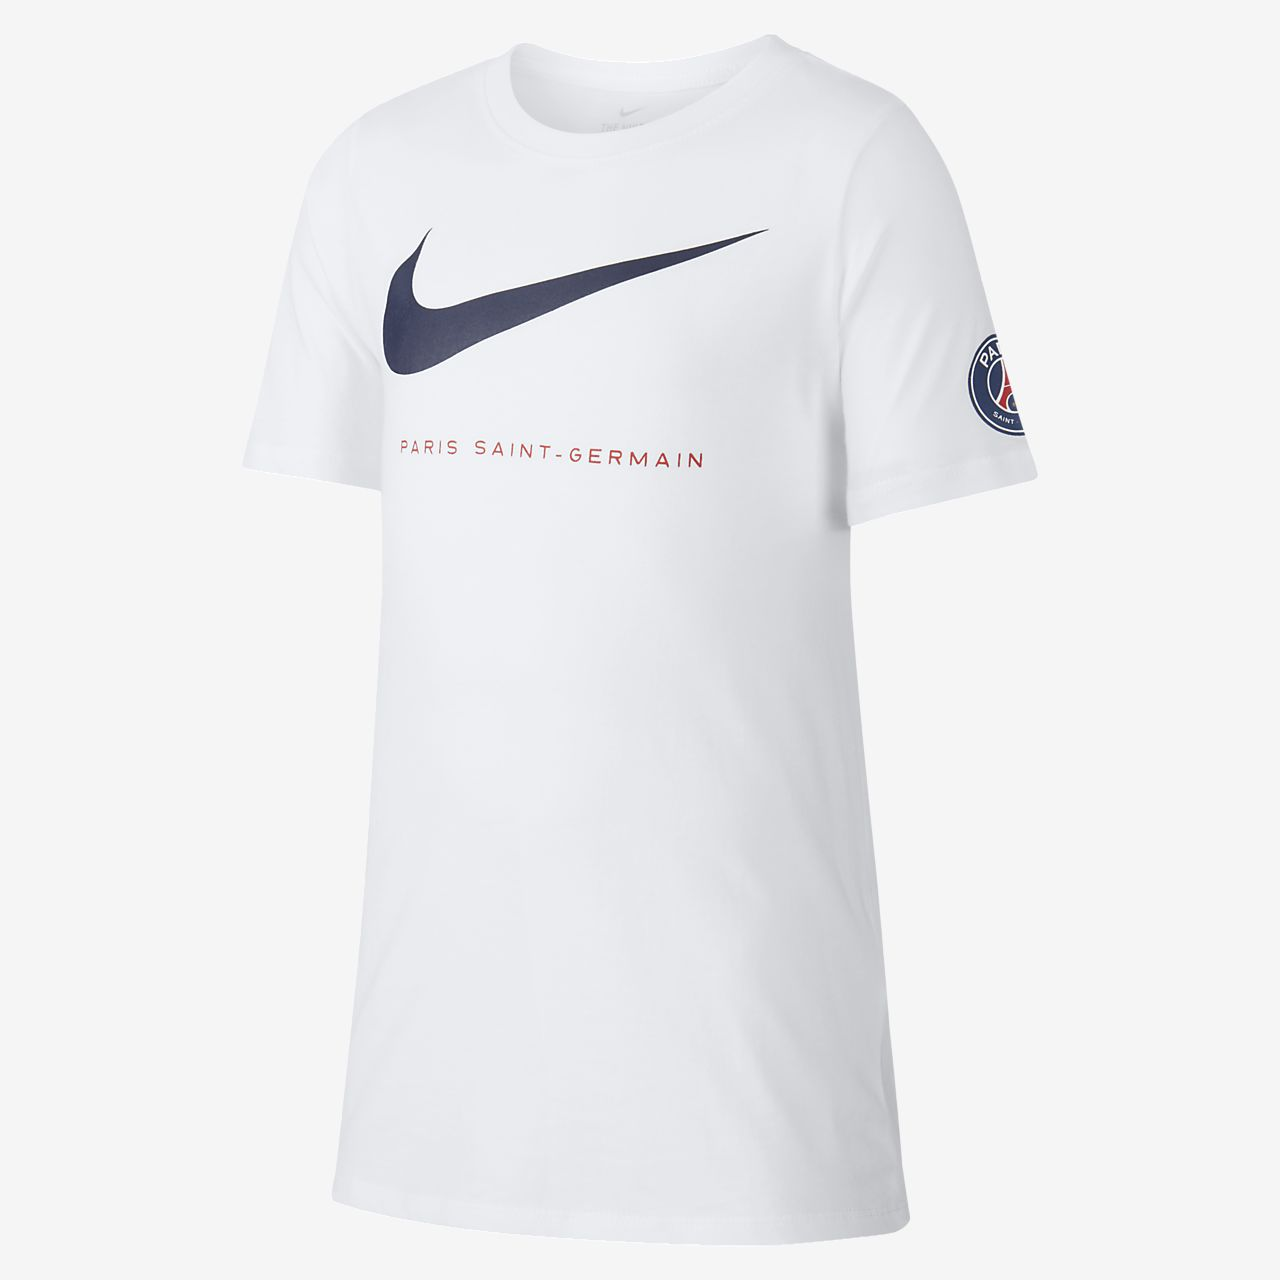 Paris Saint-Germain T-Shirt für ältere Kinder